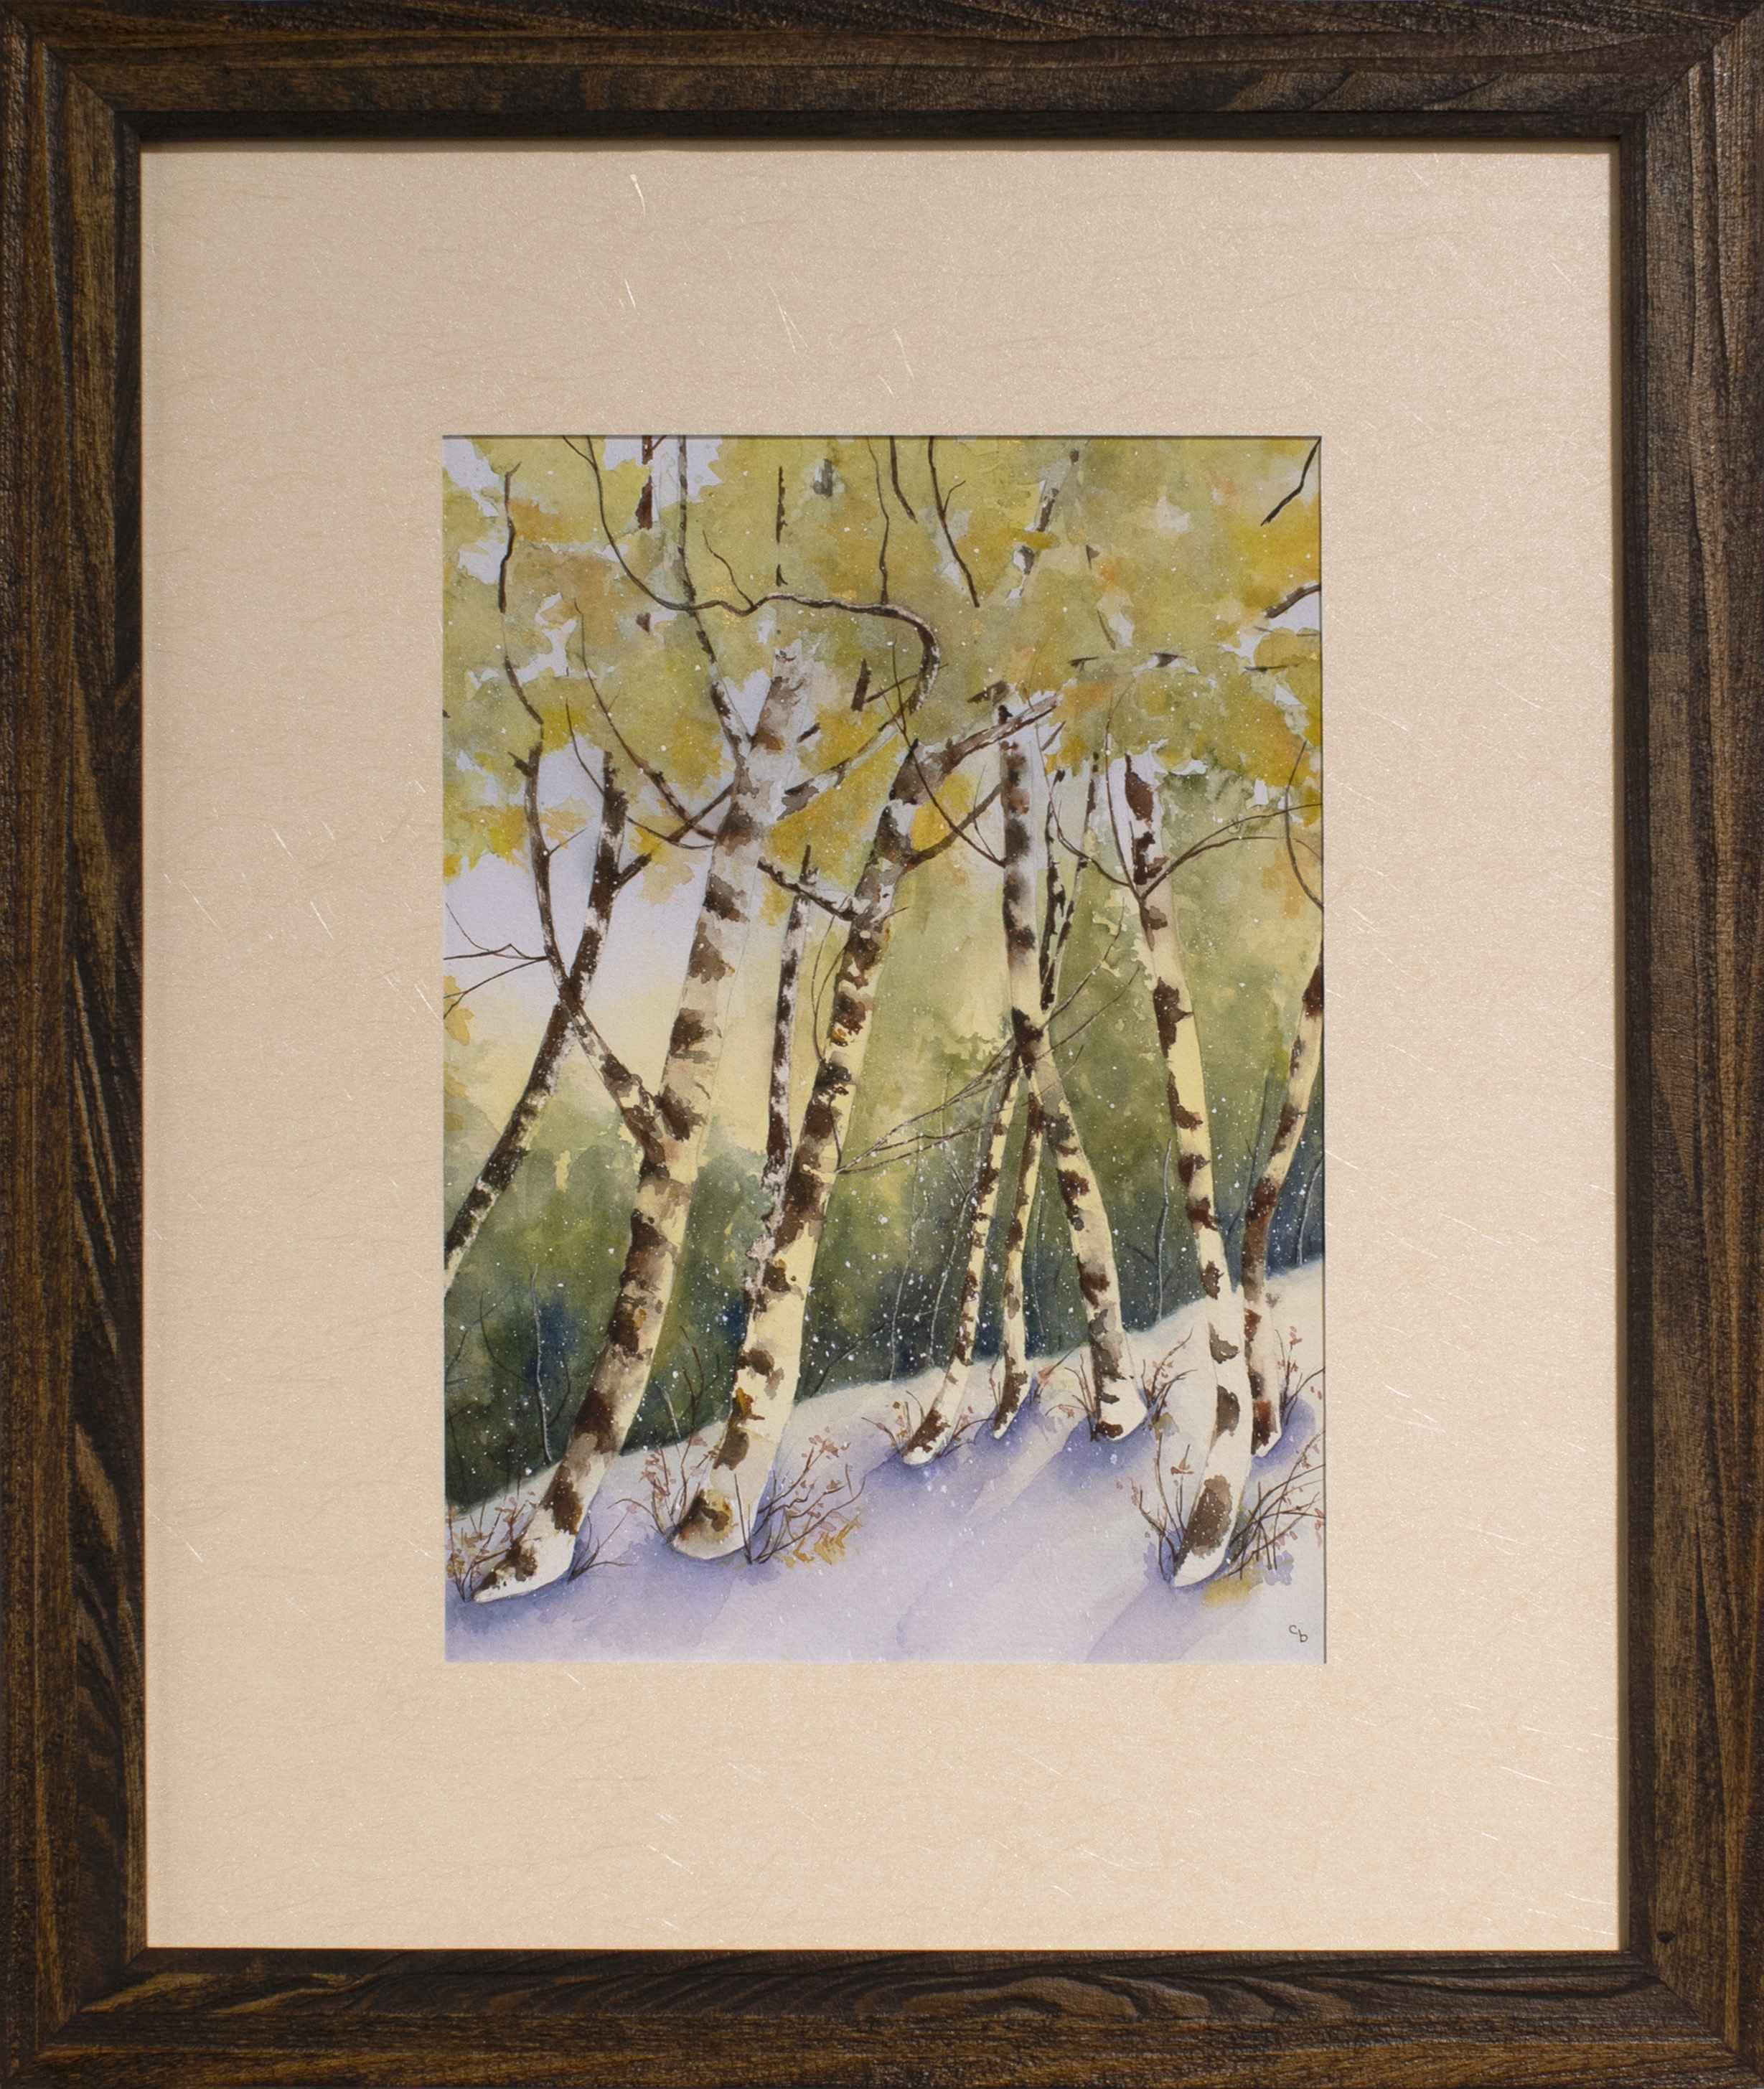 Spring Snow by Courtney Brown